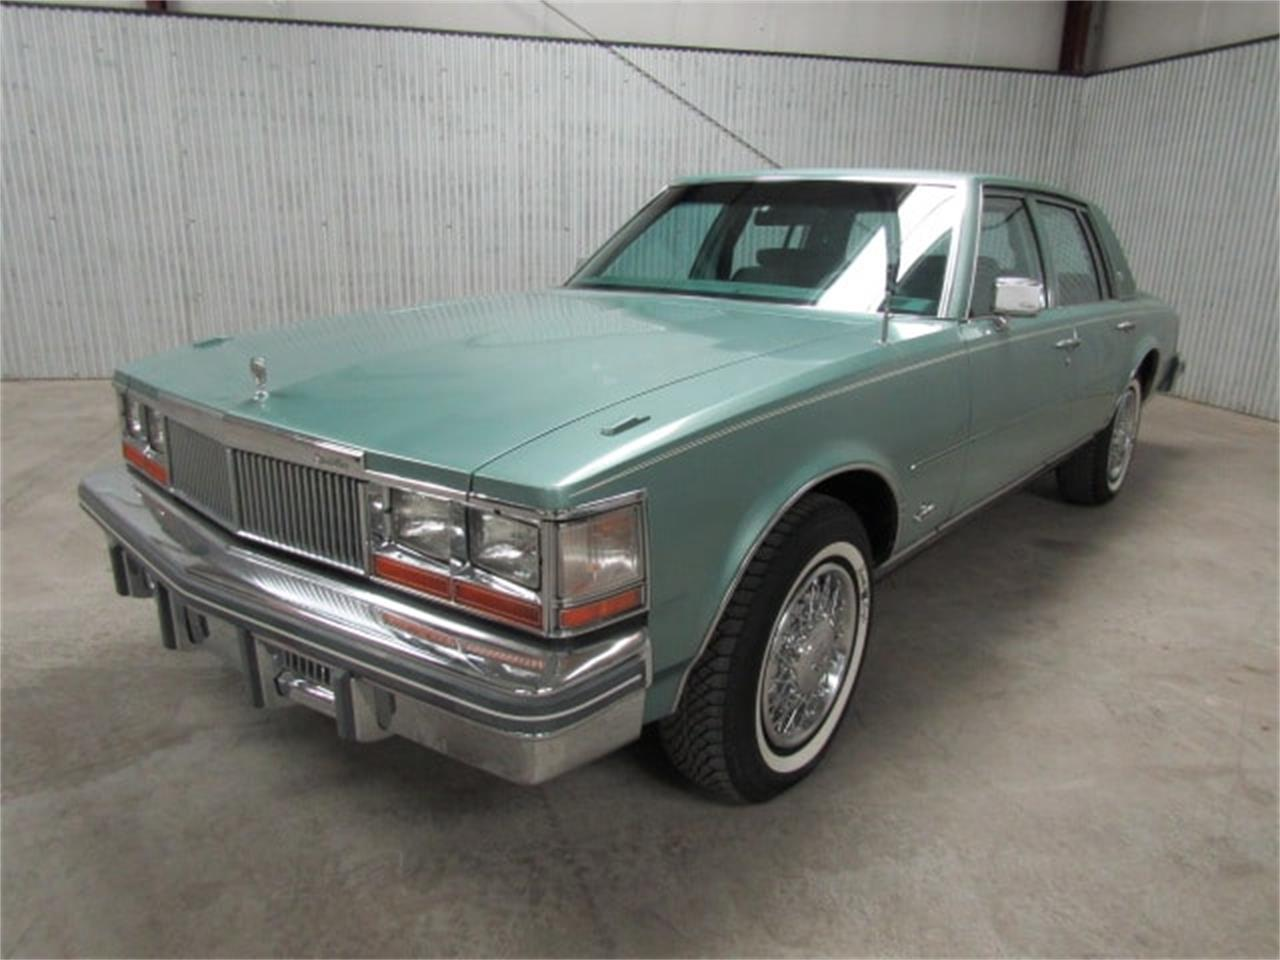 Large Picture of 1977 Cadillac Seville located in Christiansburg Virginia - $13,993.00 Offered by Duncan Imports & Classic Cars - LIA0